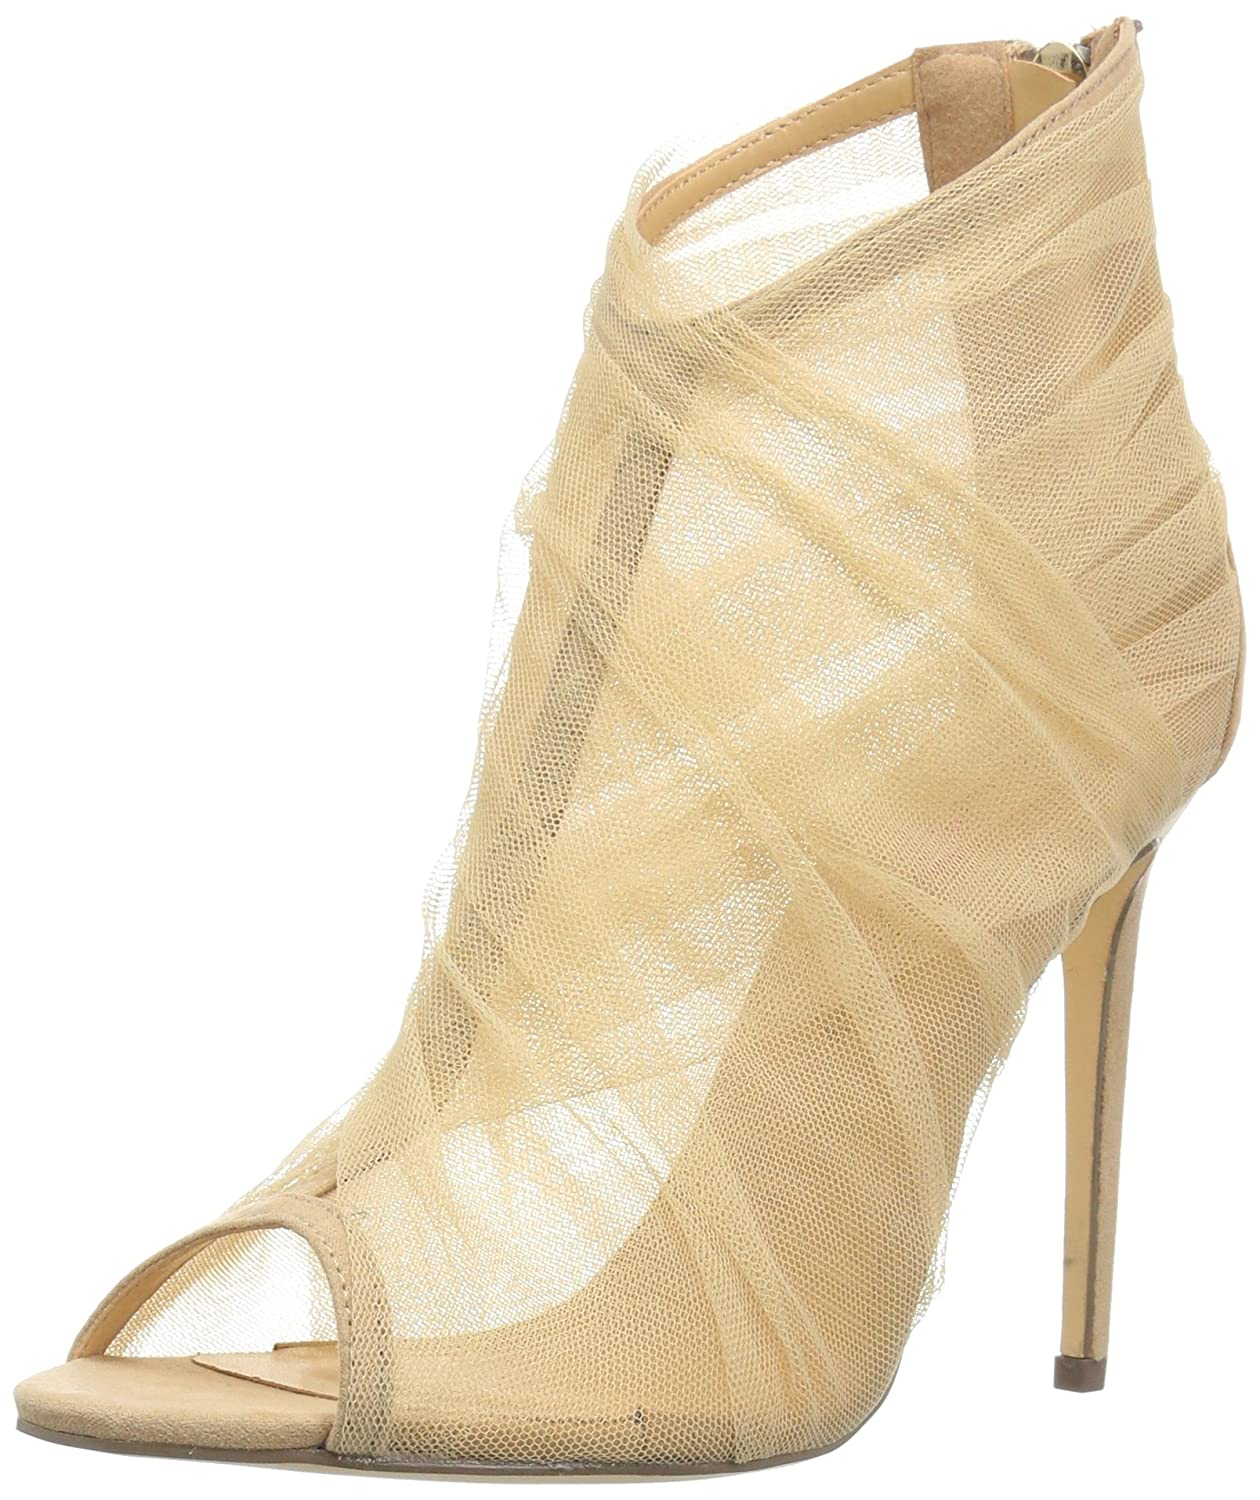 Penny Loves Kenny Women's Skylar Pump B073VTHWP3 6 B(M) US|Taupe